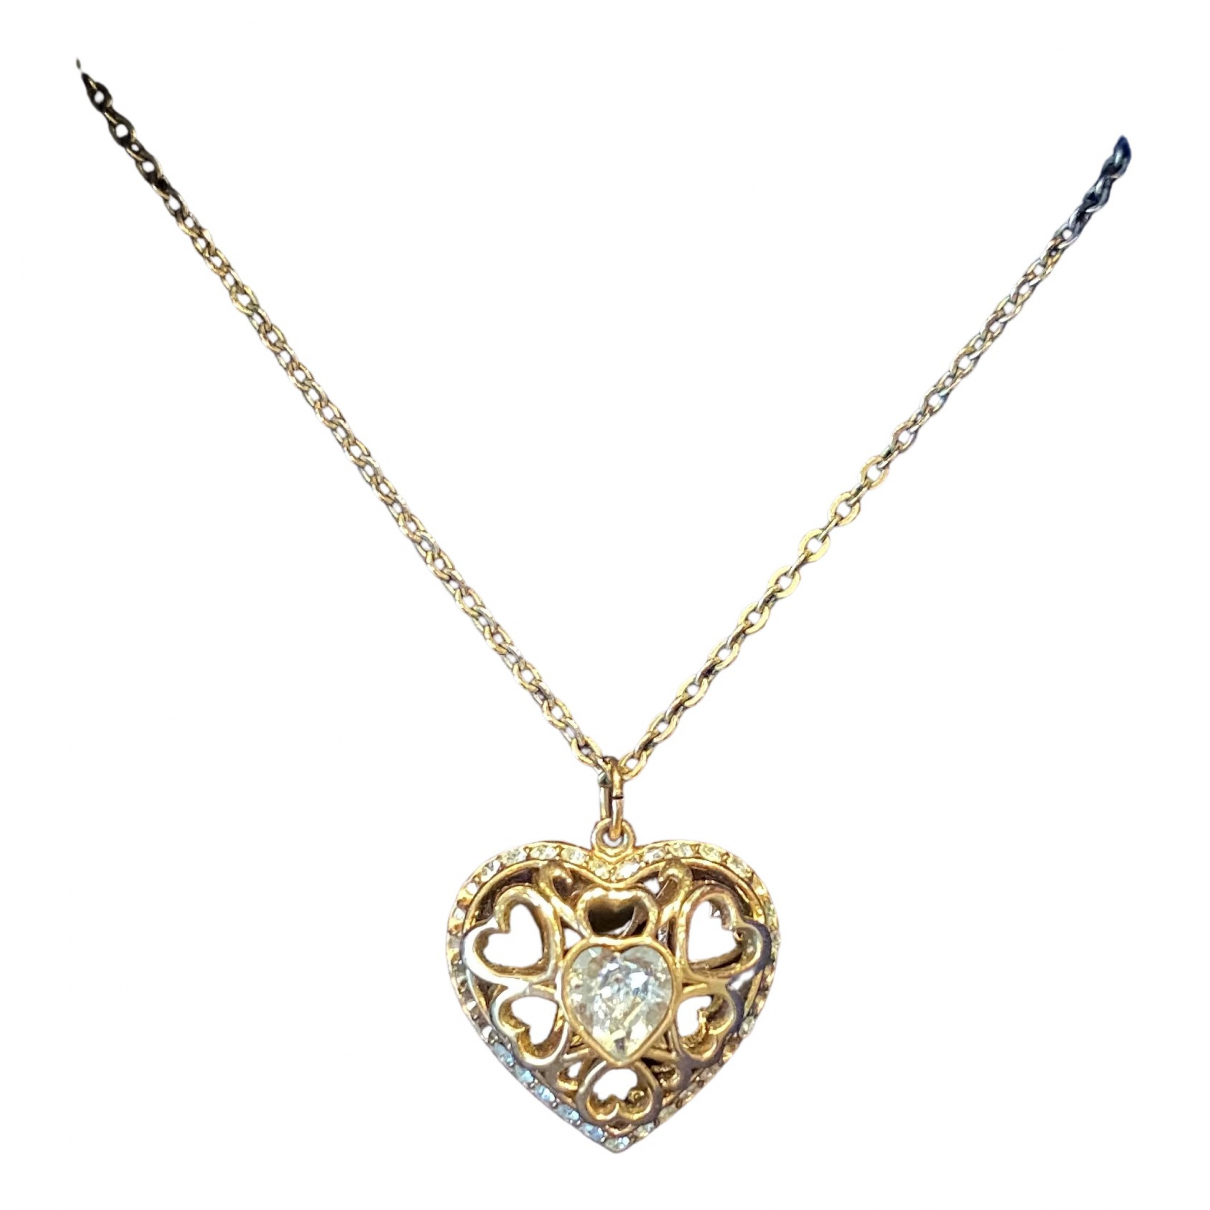 Swarovski N Gold Metal necklace for Women N